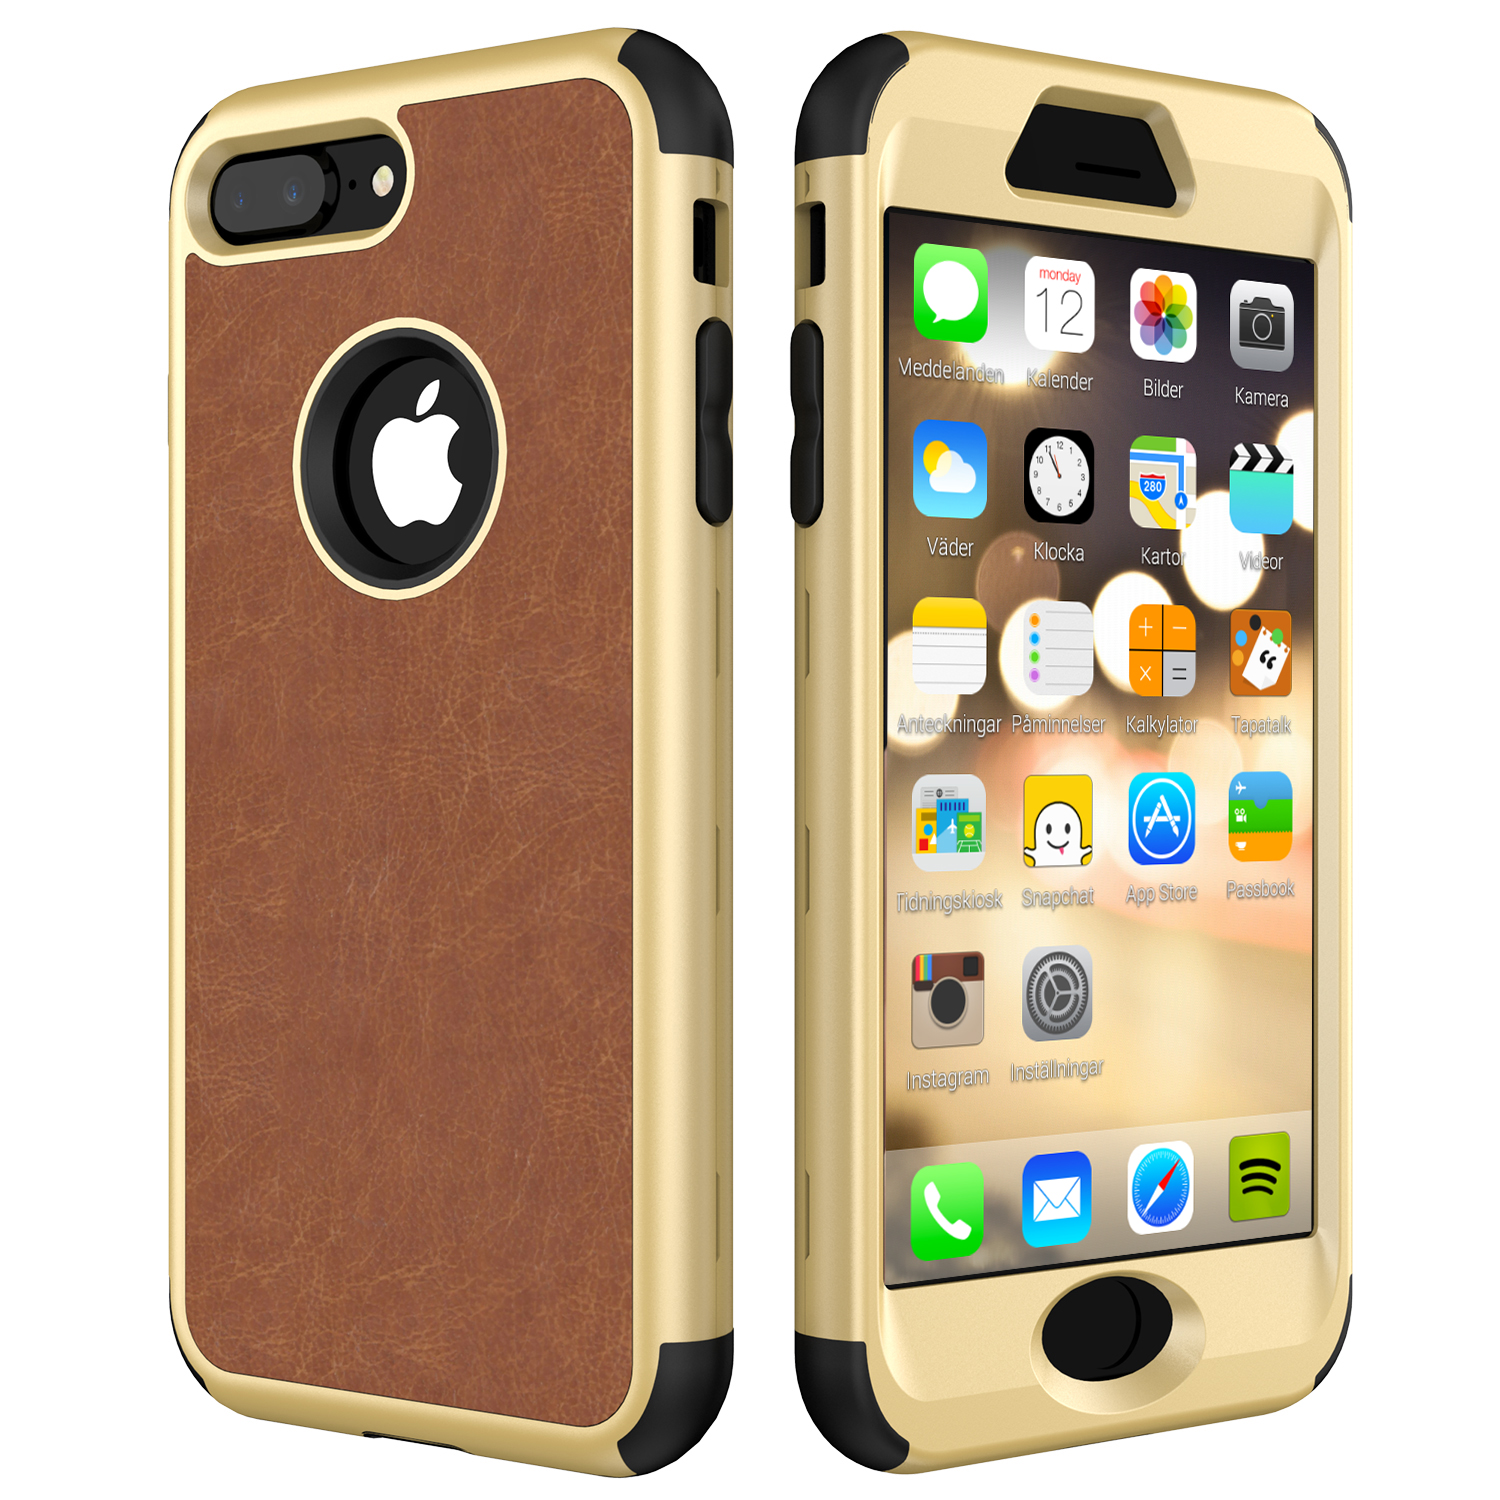 For iPhone 7 8 6 6S Plus Luxury Case Premium PU Leather Cover for iPhone 7 Full Body Protect Soft Silicone+PC Hyrbrid Phone Case